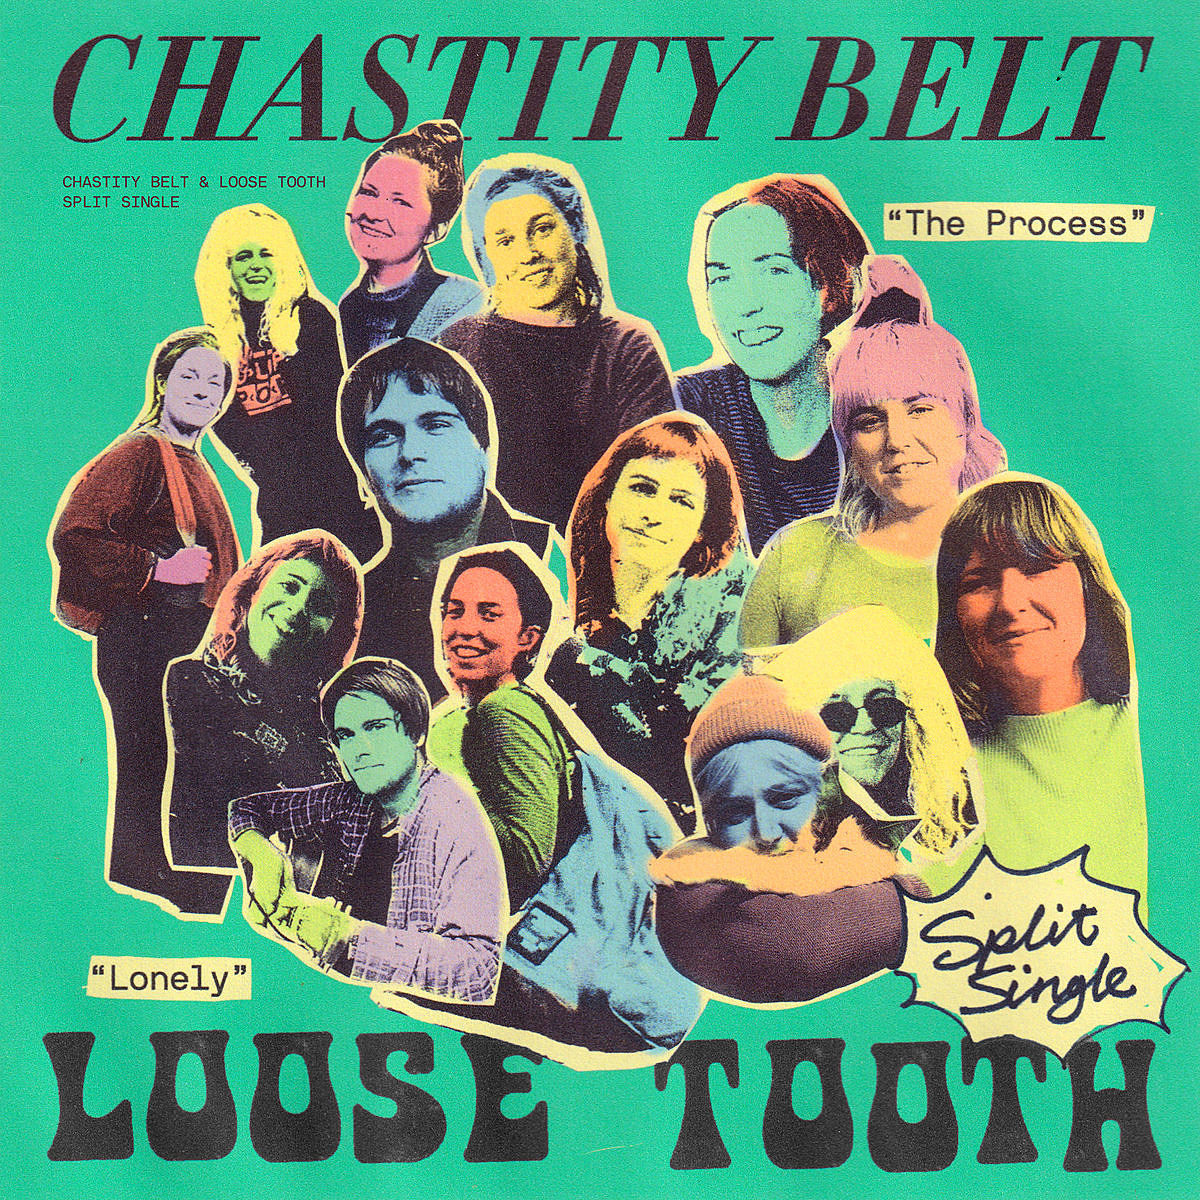 Chastity Belt Loose Tooth release split-7″ for upcoming North American tour